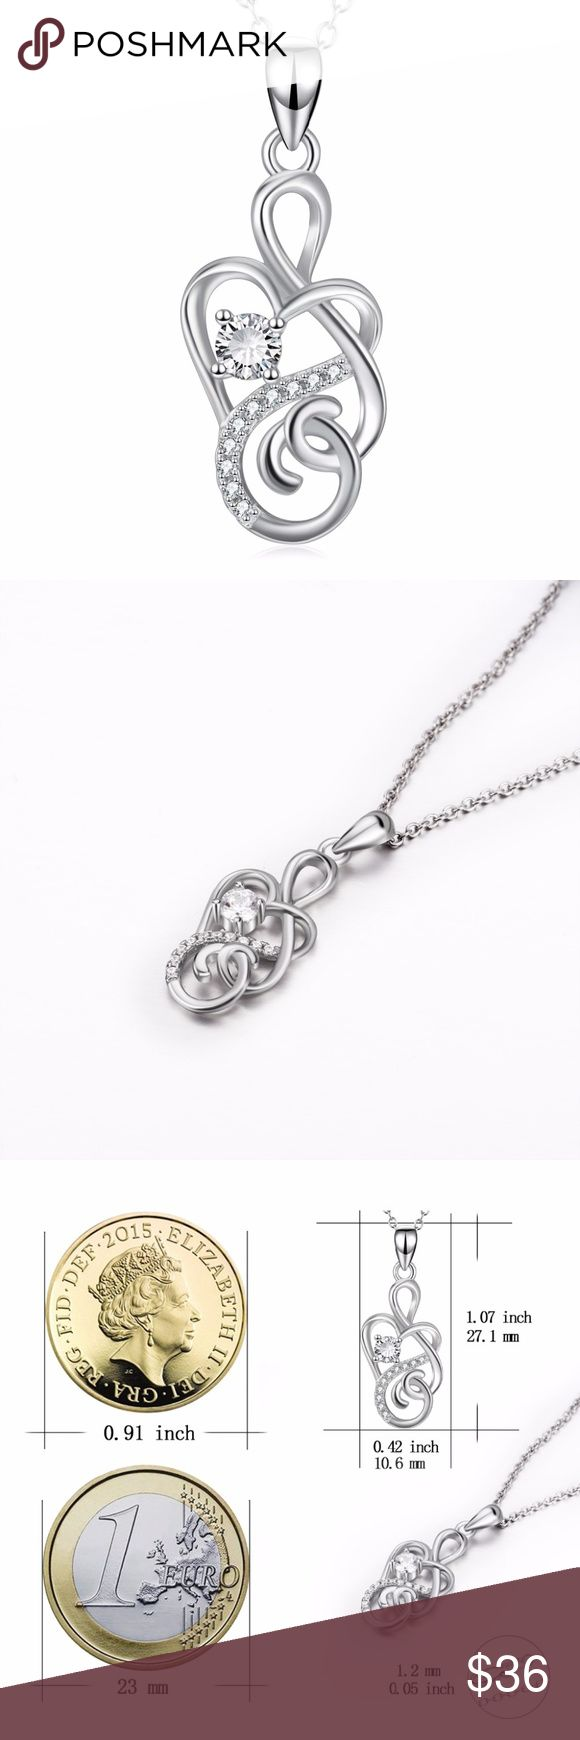 New infinity love pendant sterling silver. Gorgeous genuine sterling silver infinity pendant with cubic zirconia crystals. Beautiful 18 inch silver chain. This item is brand new & created by skilled jewelers.  Our items are made using quality materials. We only sell high grade  jewelry items. Please see our stunning photos.  We ship USPS  4 to 13 days delivery with TRACKING NUMBER. Ziggy Twig Jewelry Necklaces